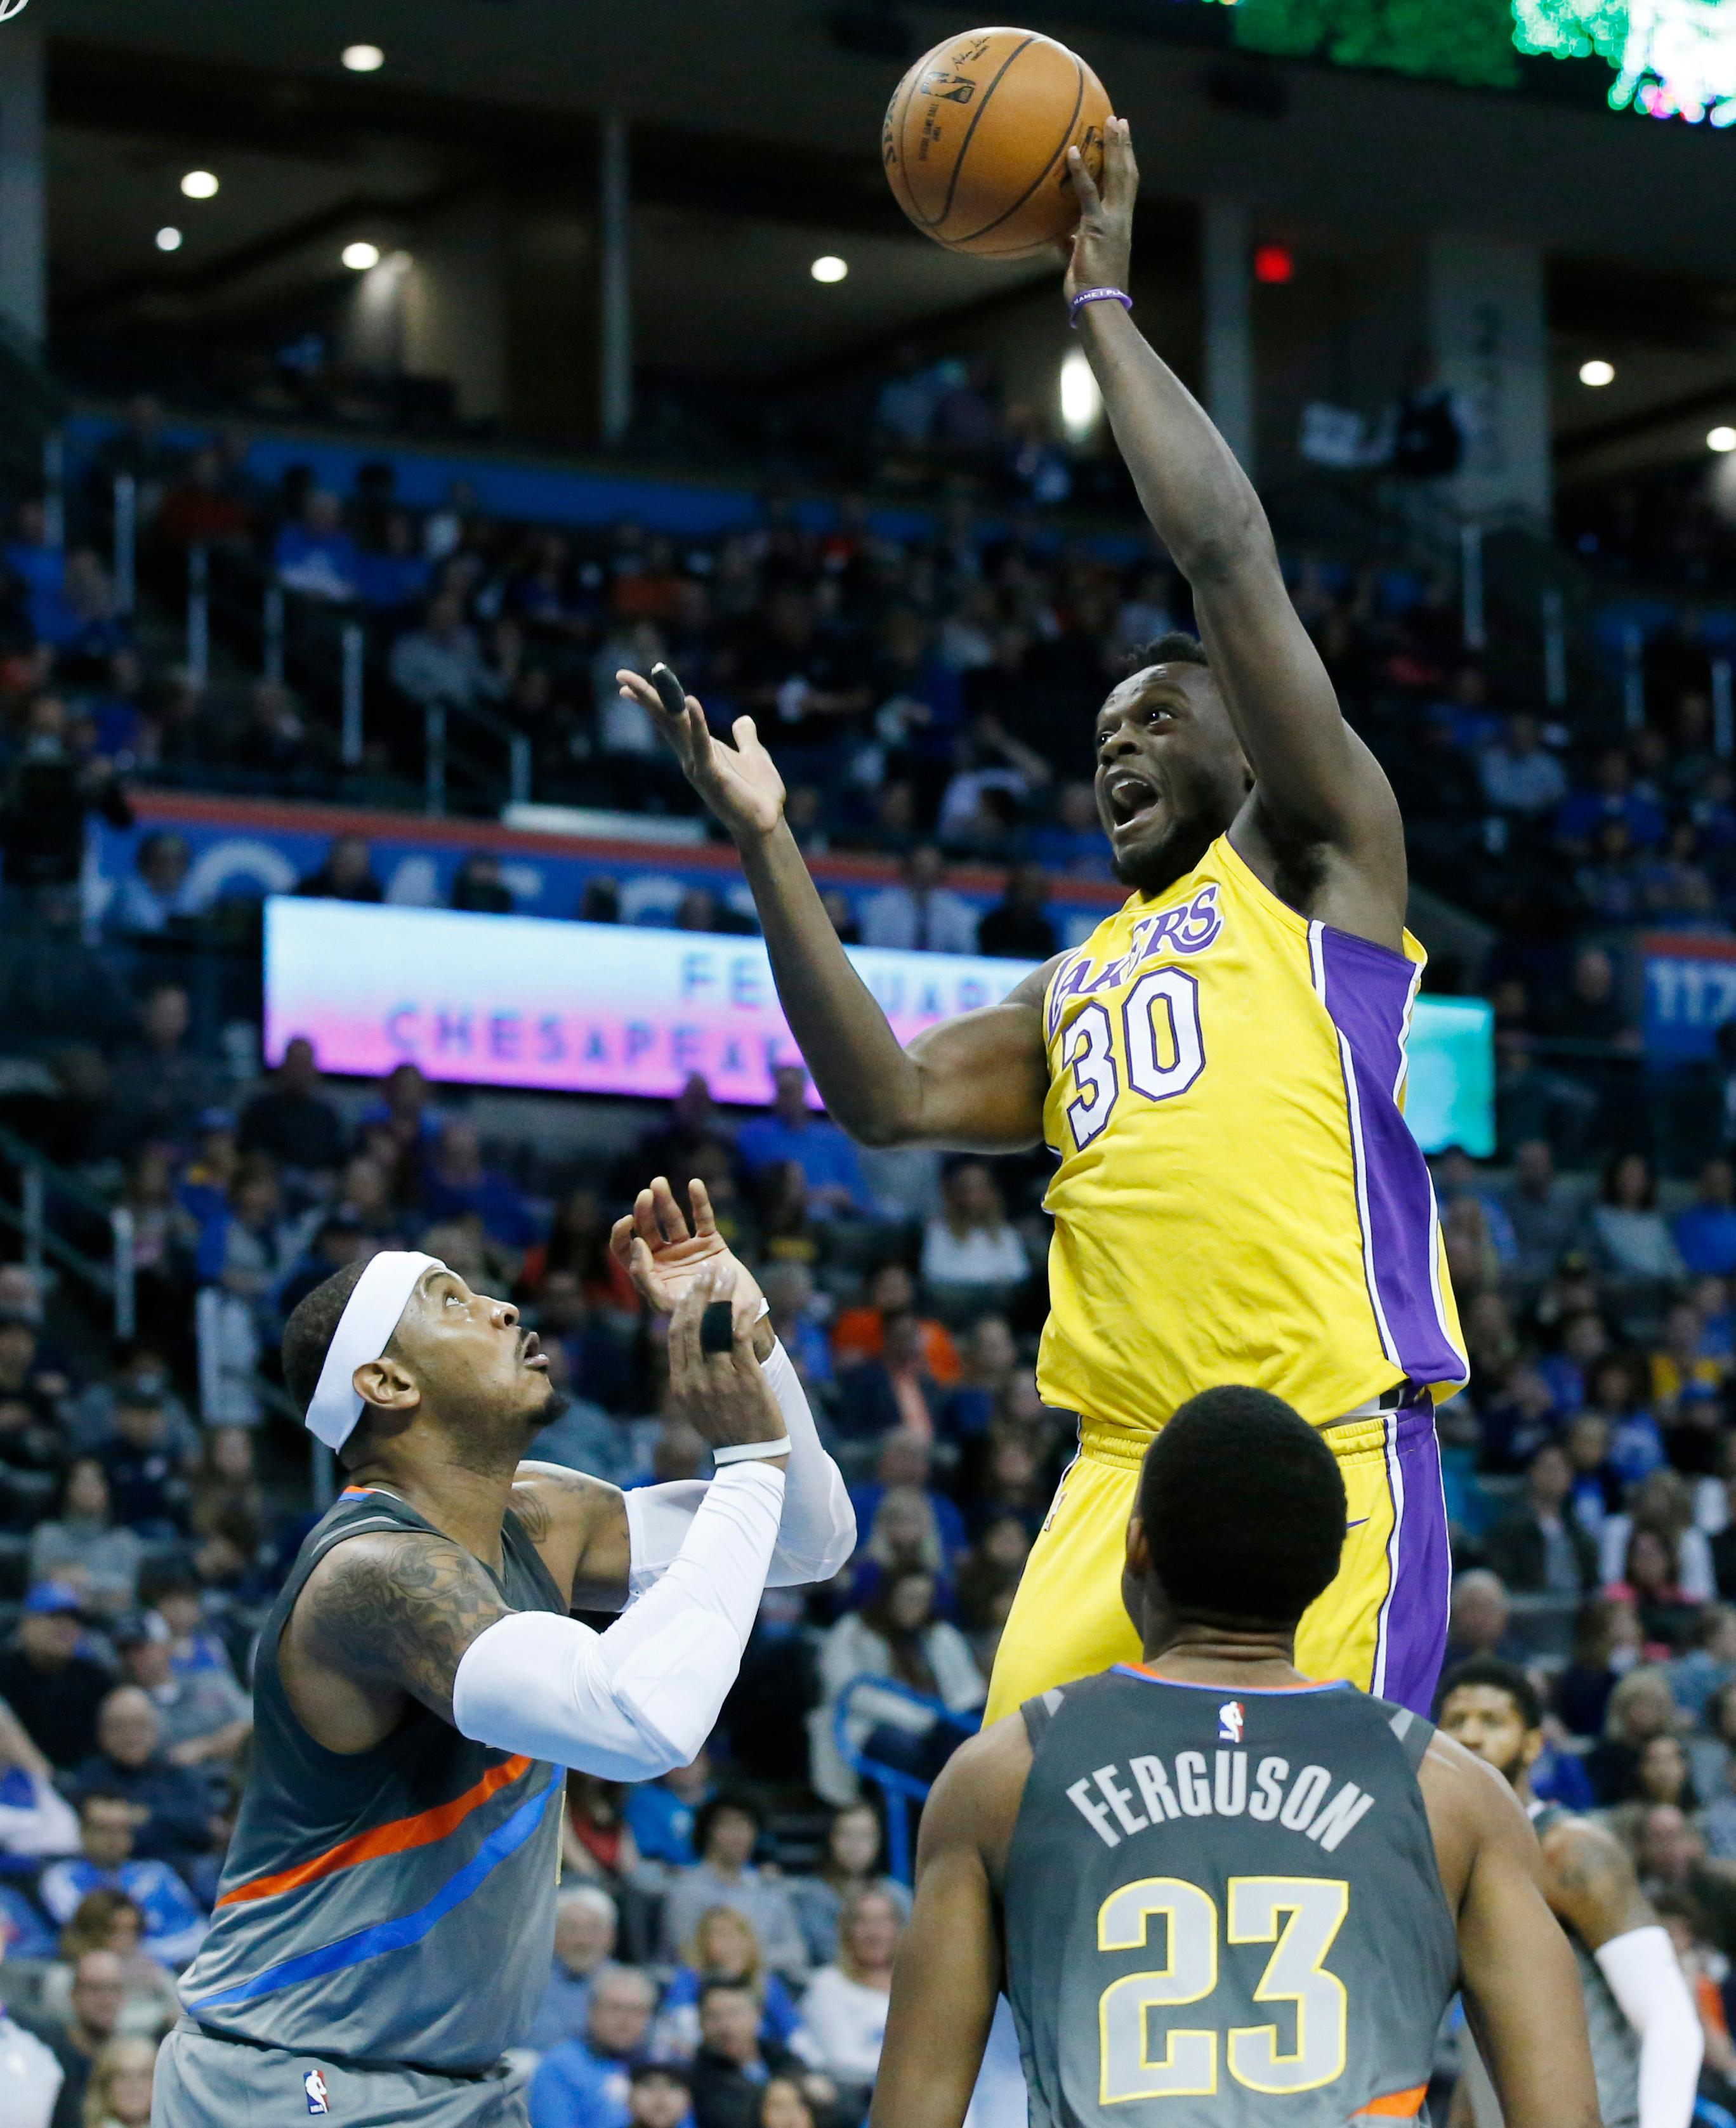 Los Angeles Lakers forward Julius Randle (30) shoots in front of Oklahoma City Thunder forward Carmelo Anthony, left, and guard Terrance Ferguson (23) in the first half of an NBA basketball game in Oklahoma City, Sunday, Feb. 4, 2018. (AP Photo/Sue Ogrocki)